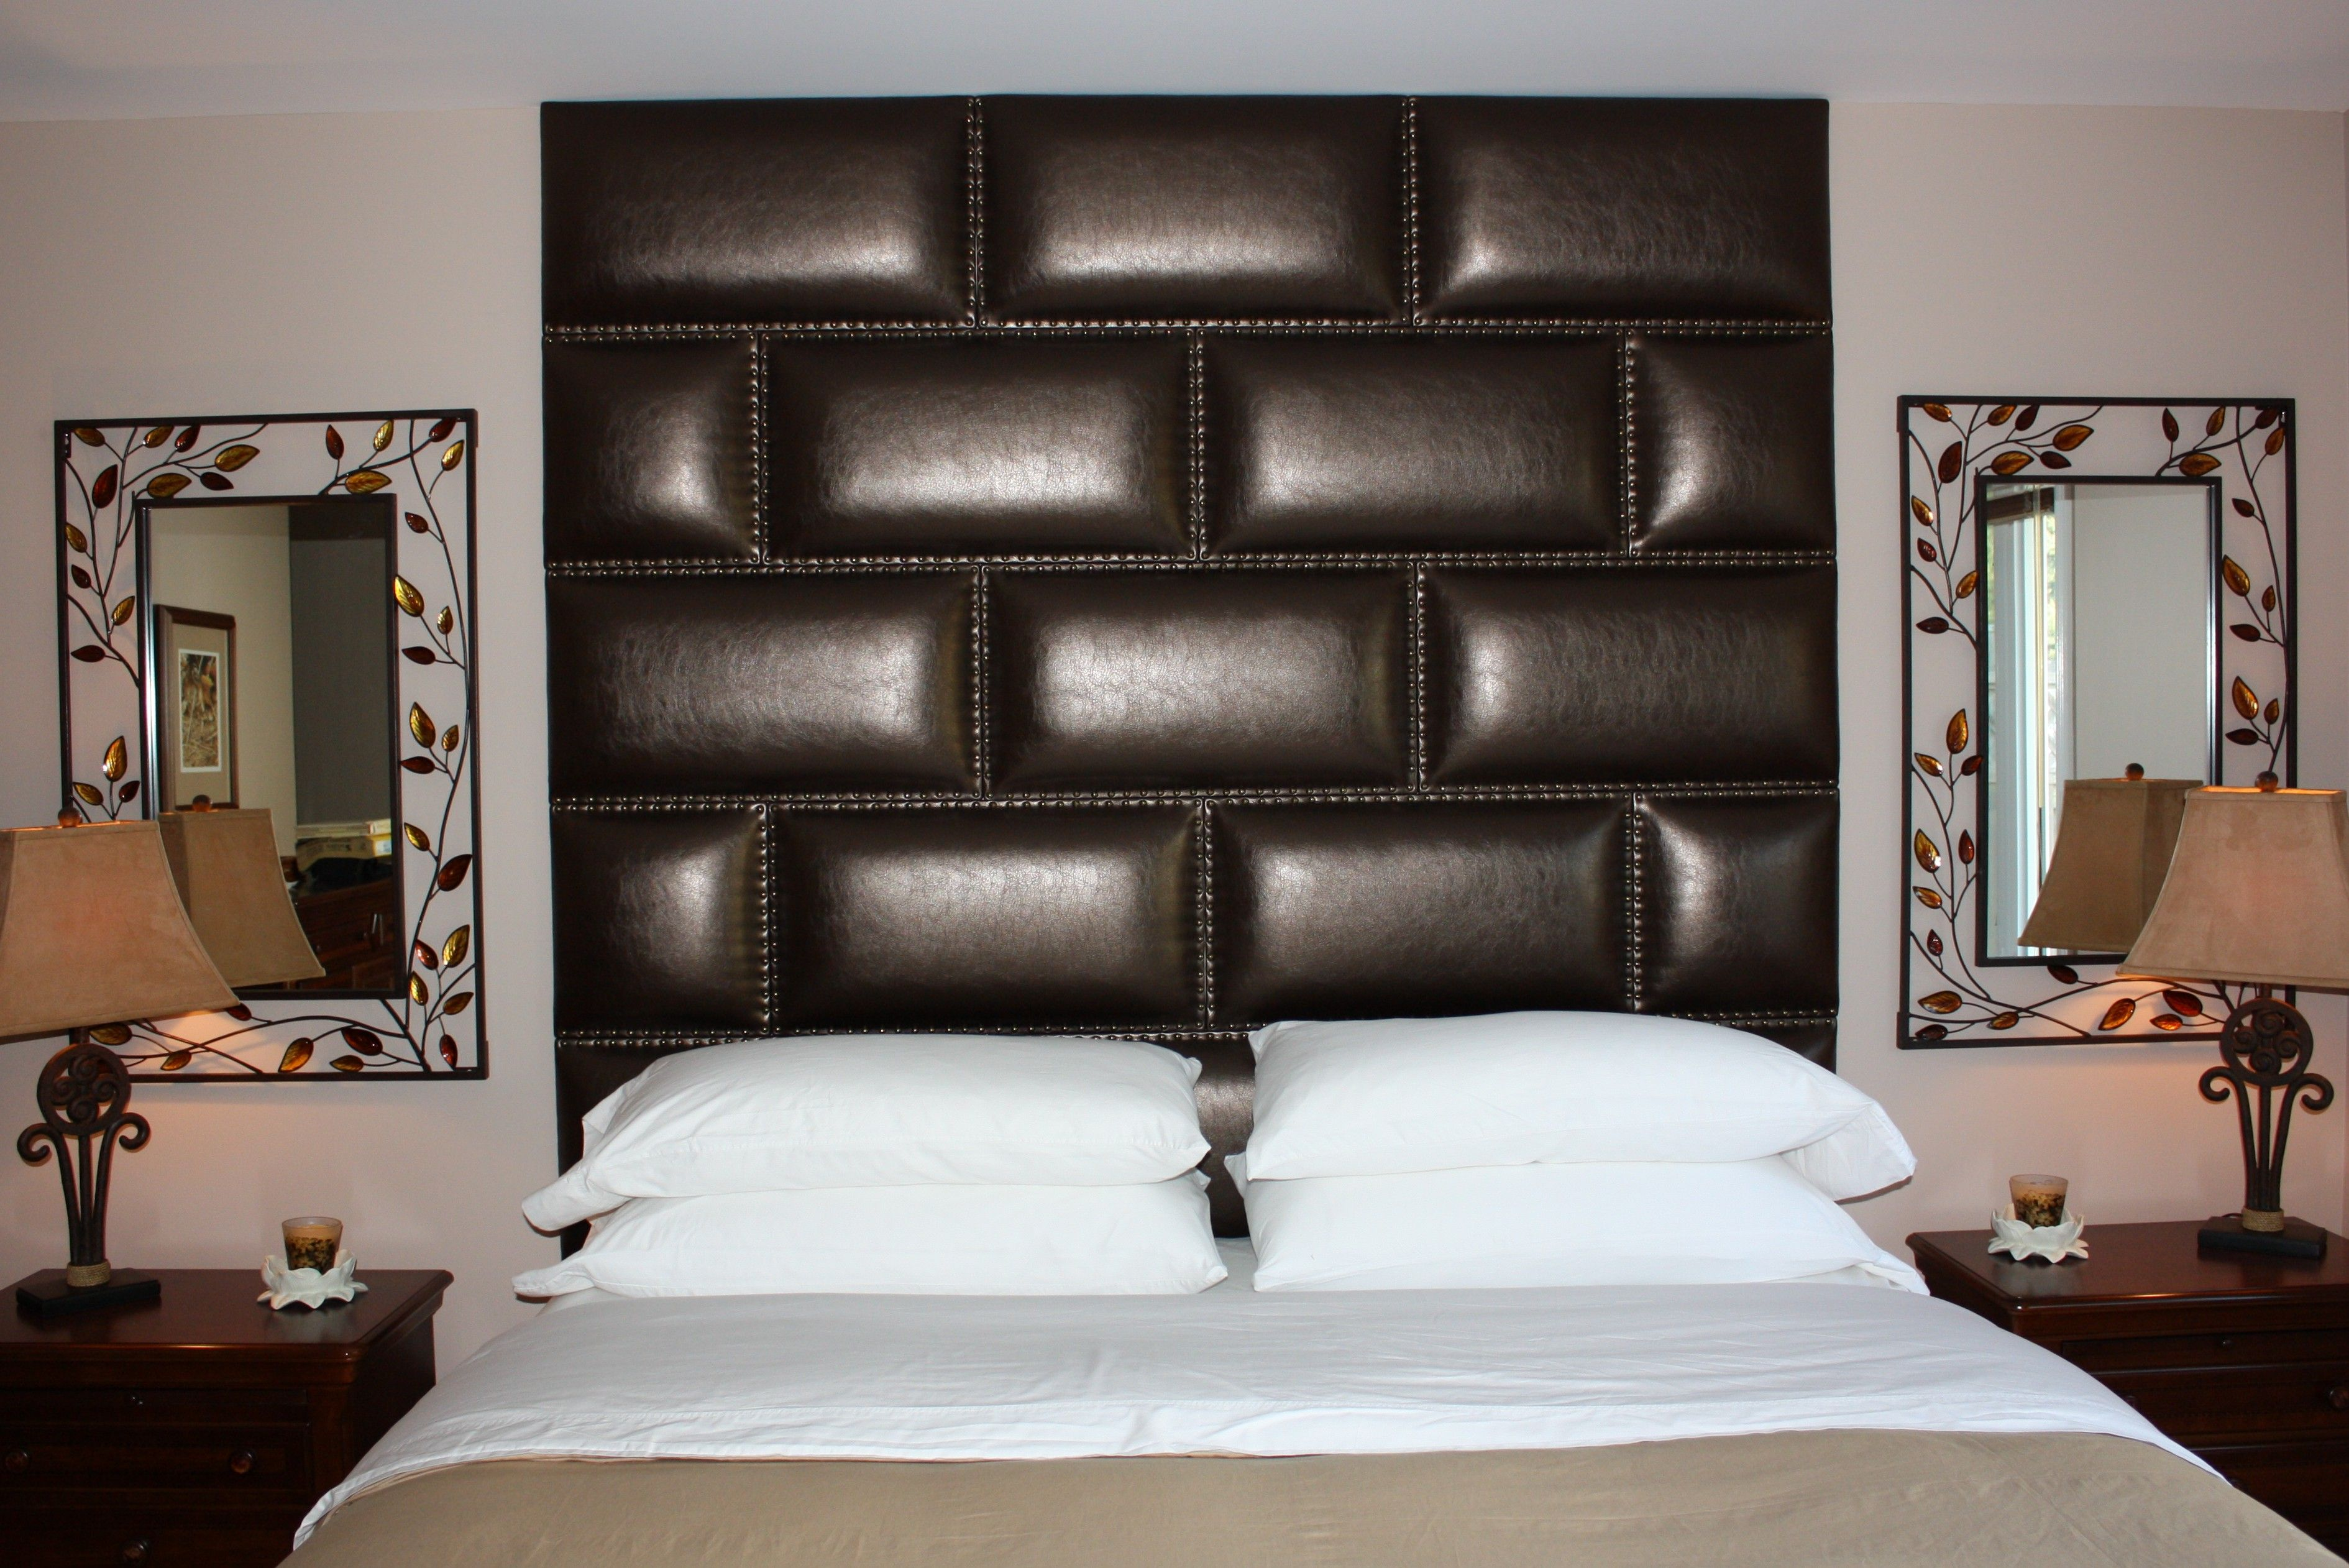 Panel Headboards For Bed Wallhuggers In Ayr Ontario